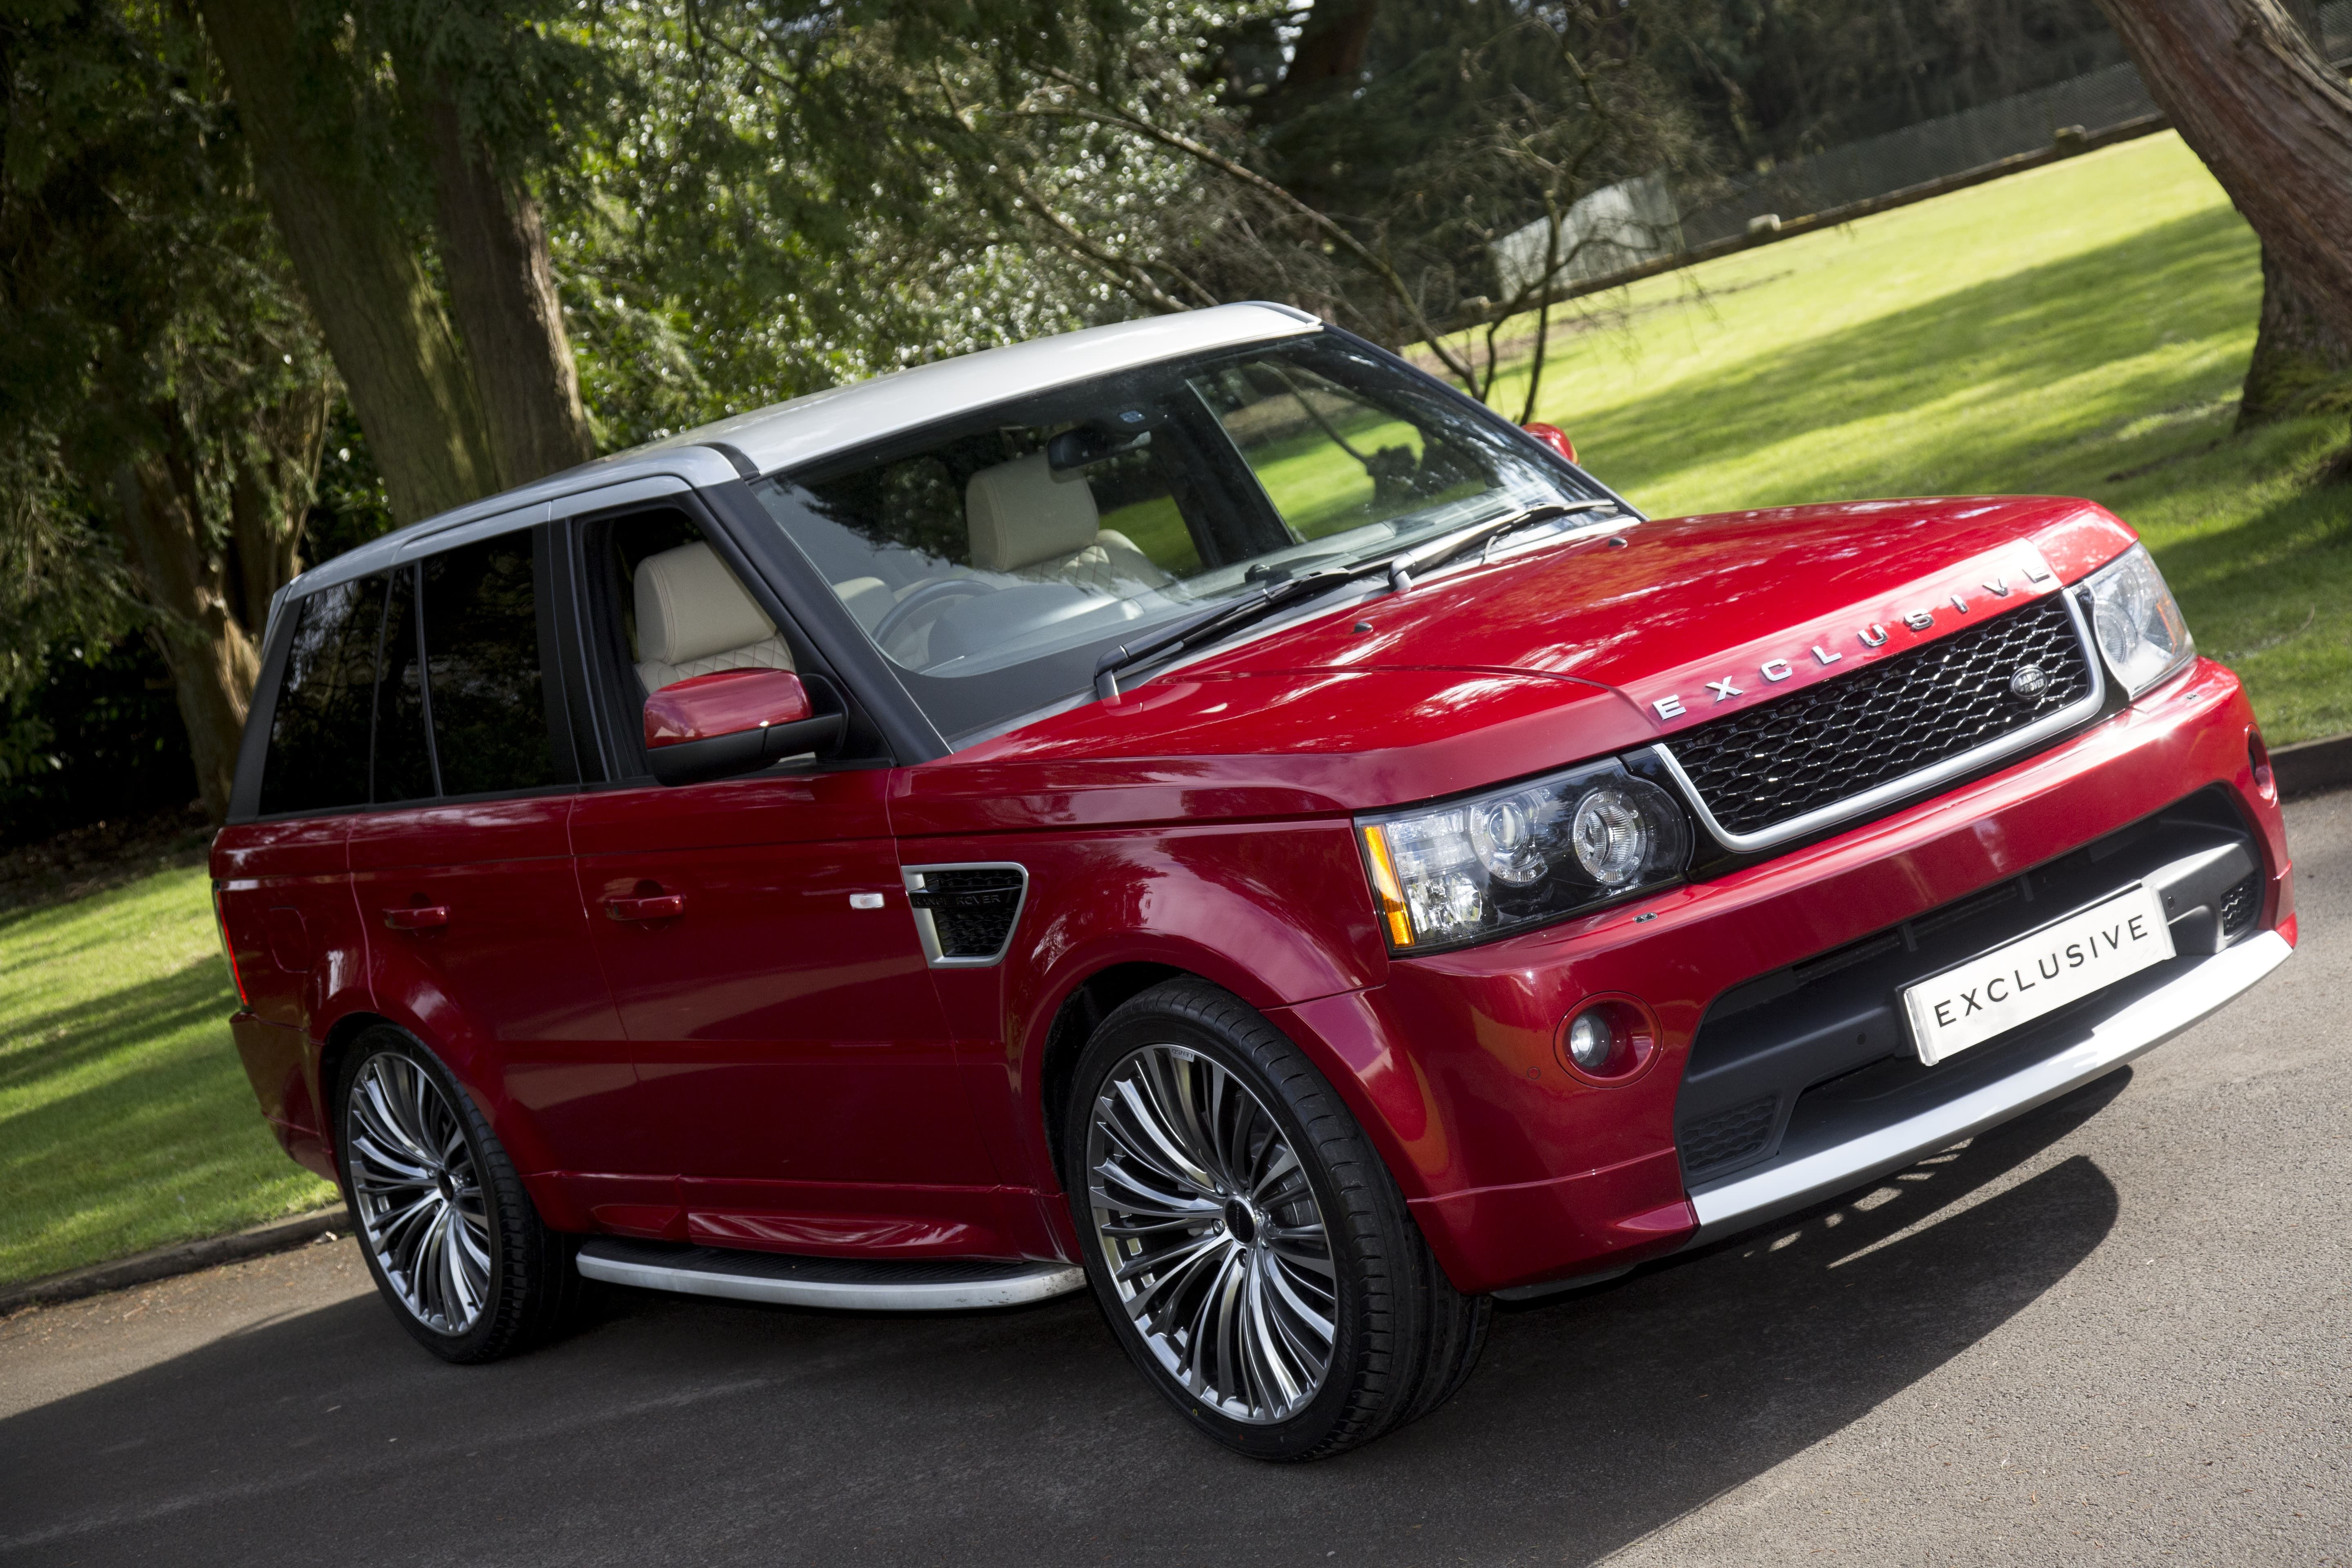 Firenze Red Range Rover Sport Exclusive Silver Floating Roof Avtomobili